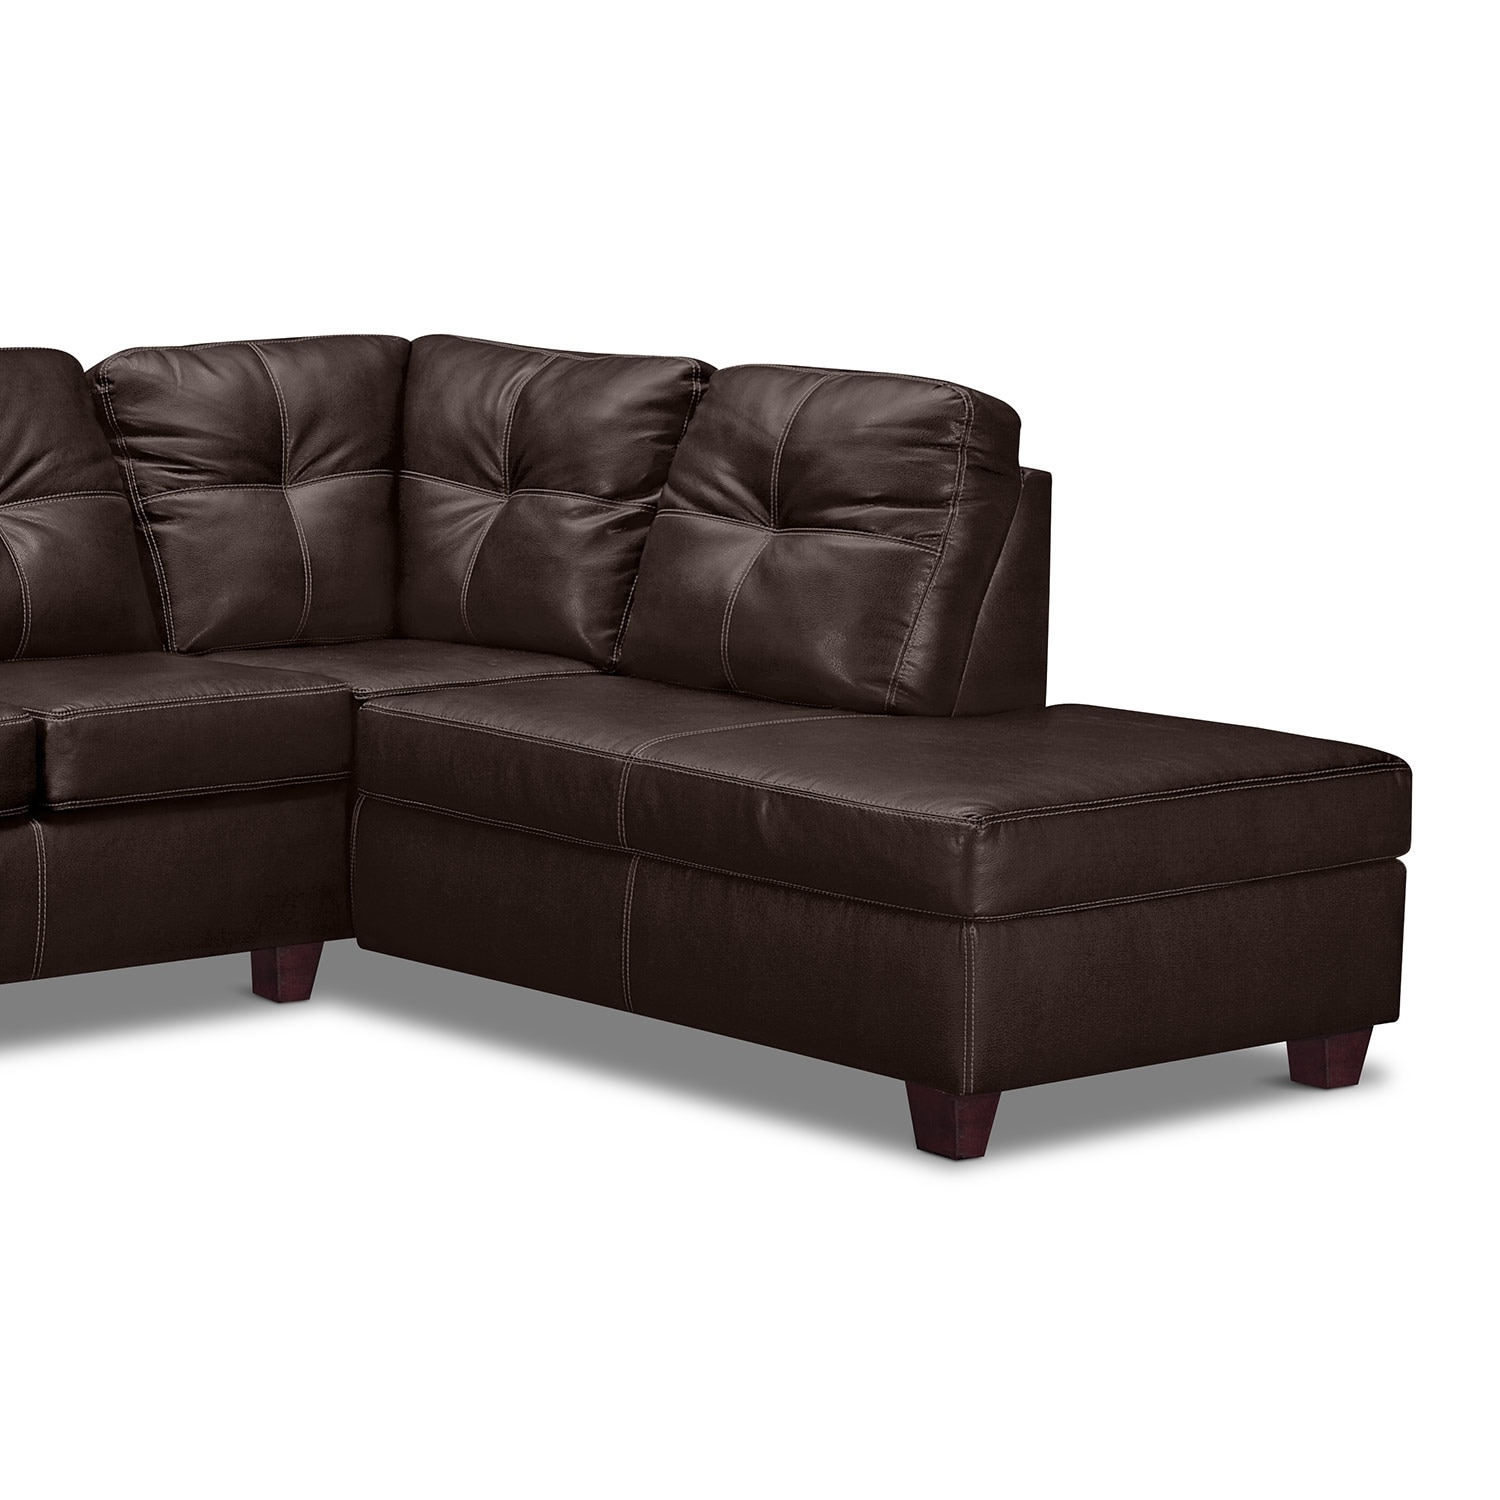 Ricardo 2 piece sectional with right facing chaise brown for Brown sectional sofa with chaise